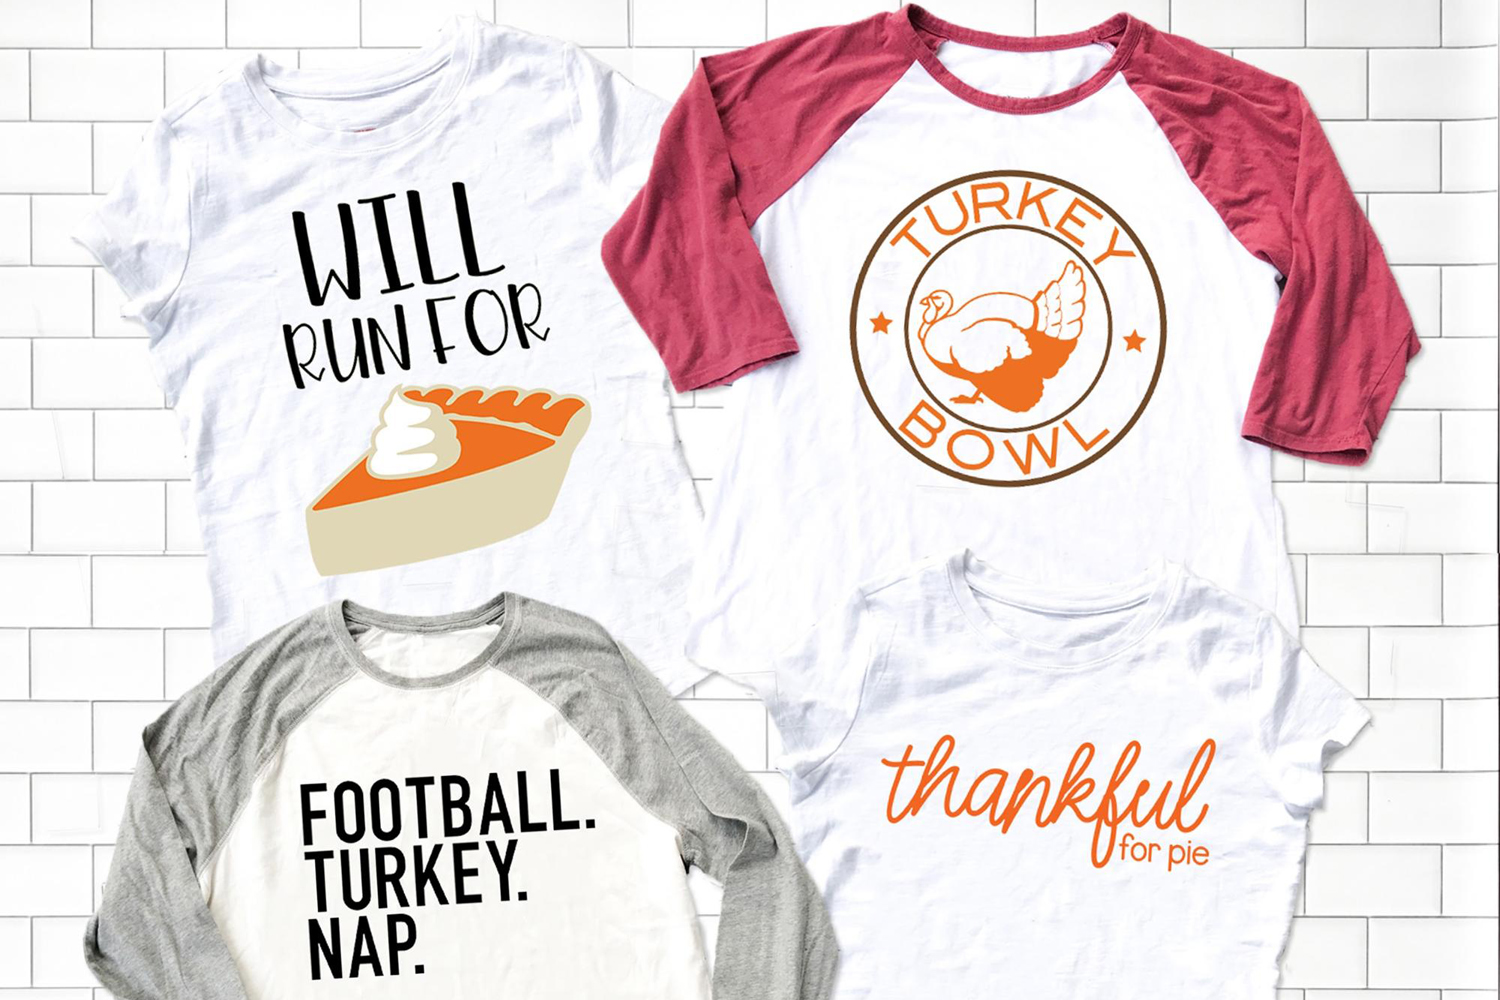 How to Design Your Own Thanksgiving Shirts?